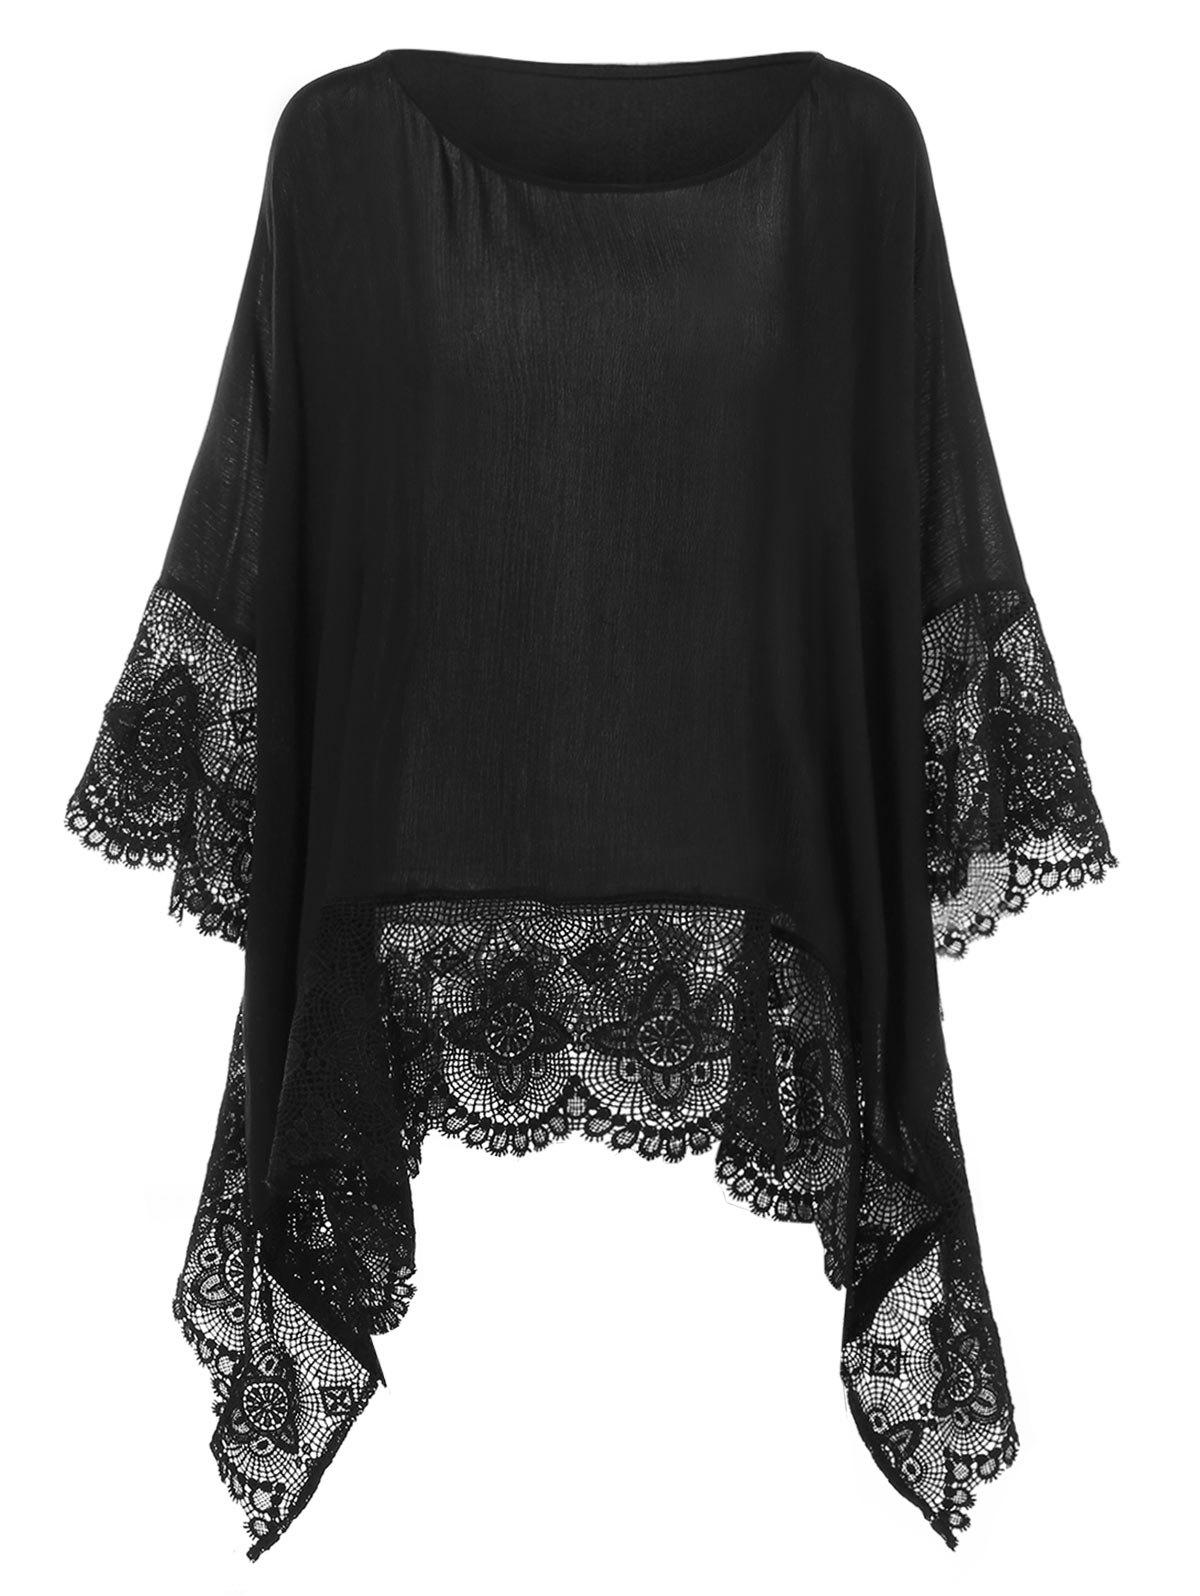 Trendy Plus Size Lace Insert Handkerchief Blouse